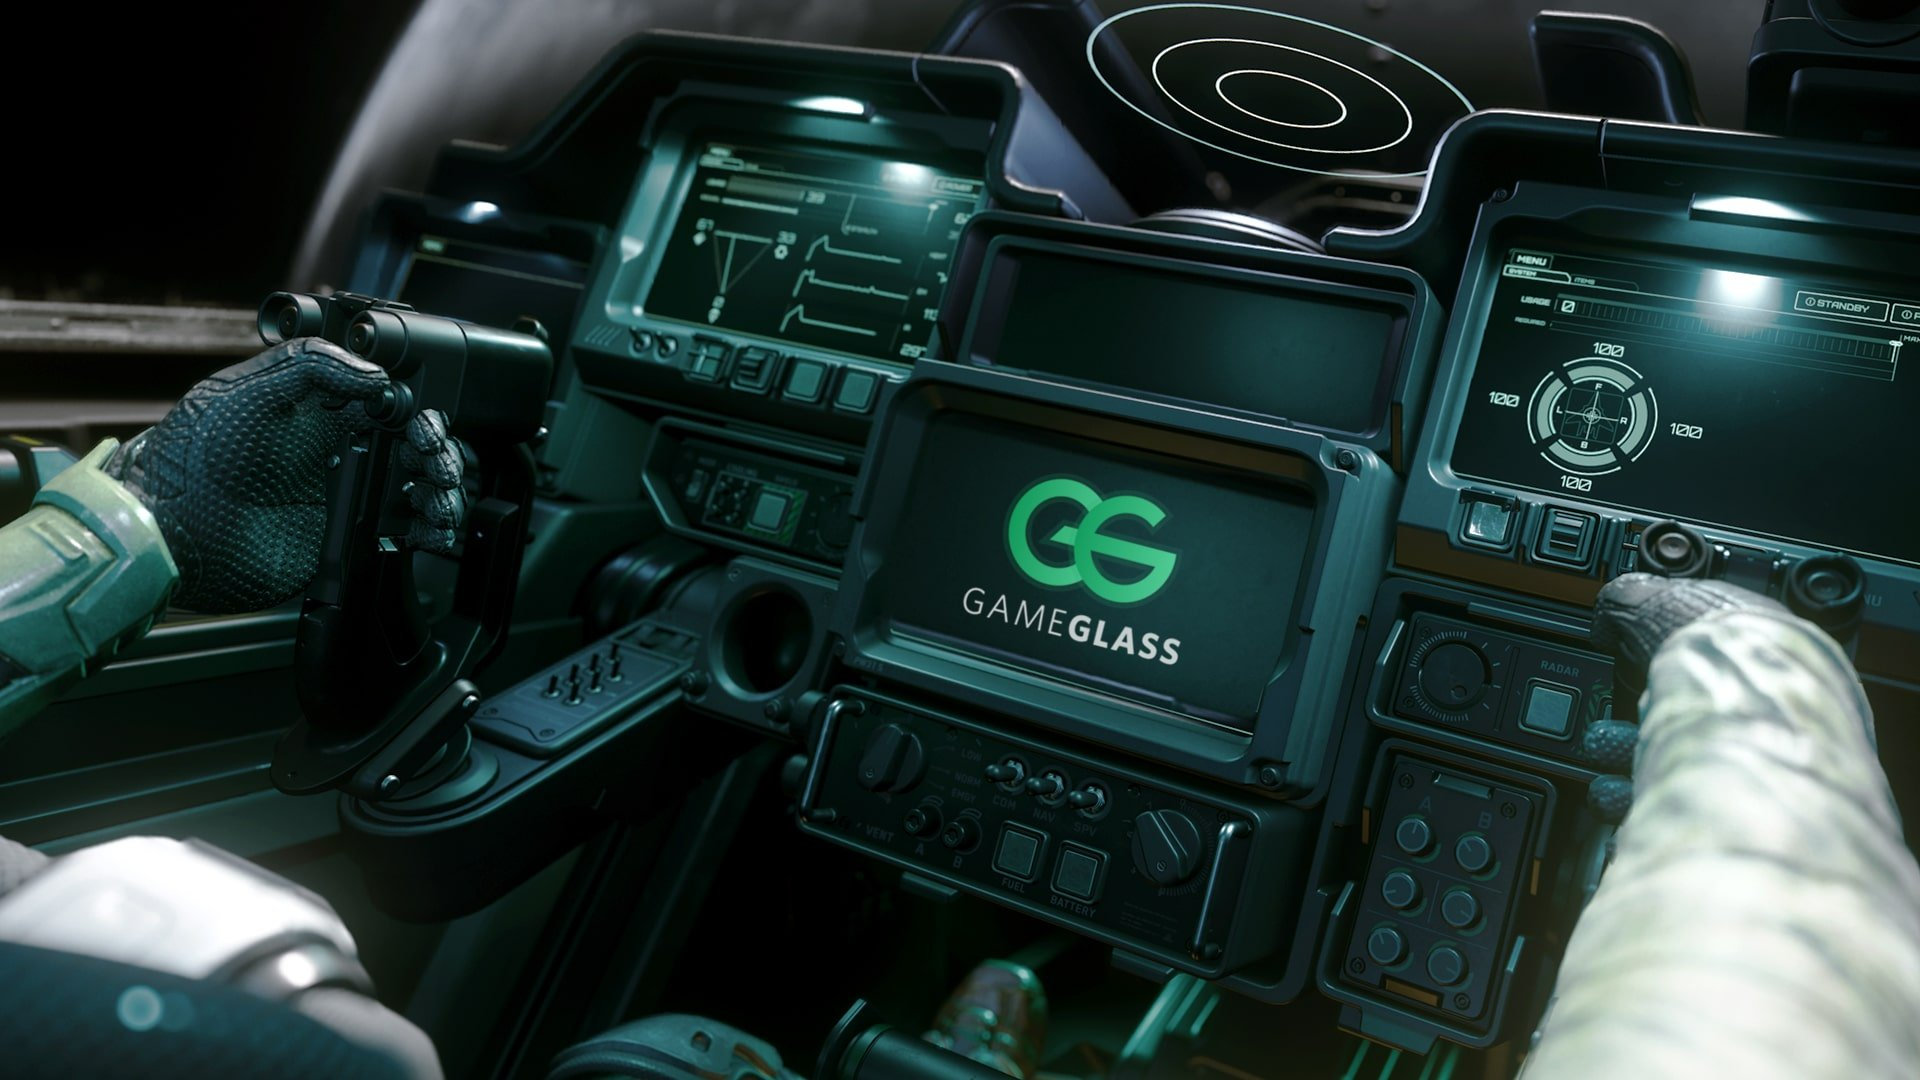 headerbild zu GameGlass für Star Citizen, GameGlass Logo in Raumschiff-Cockpit